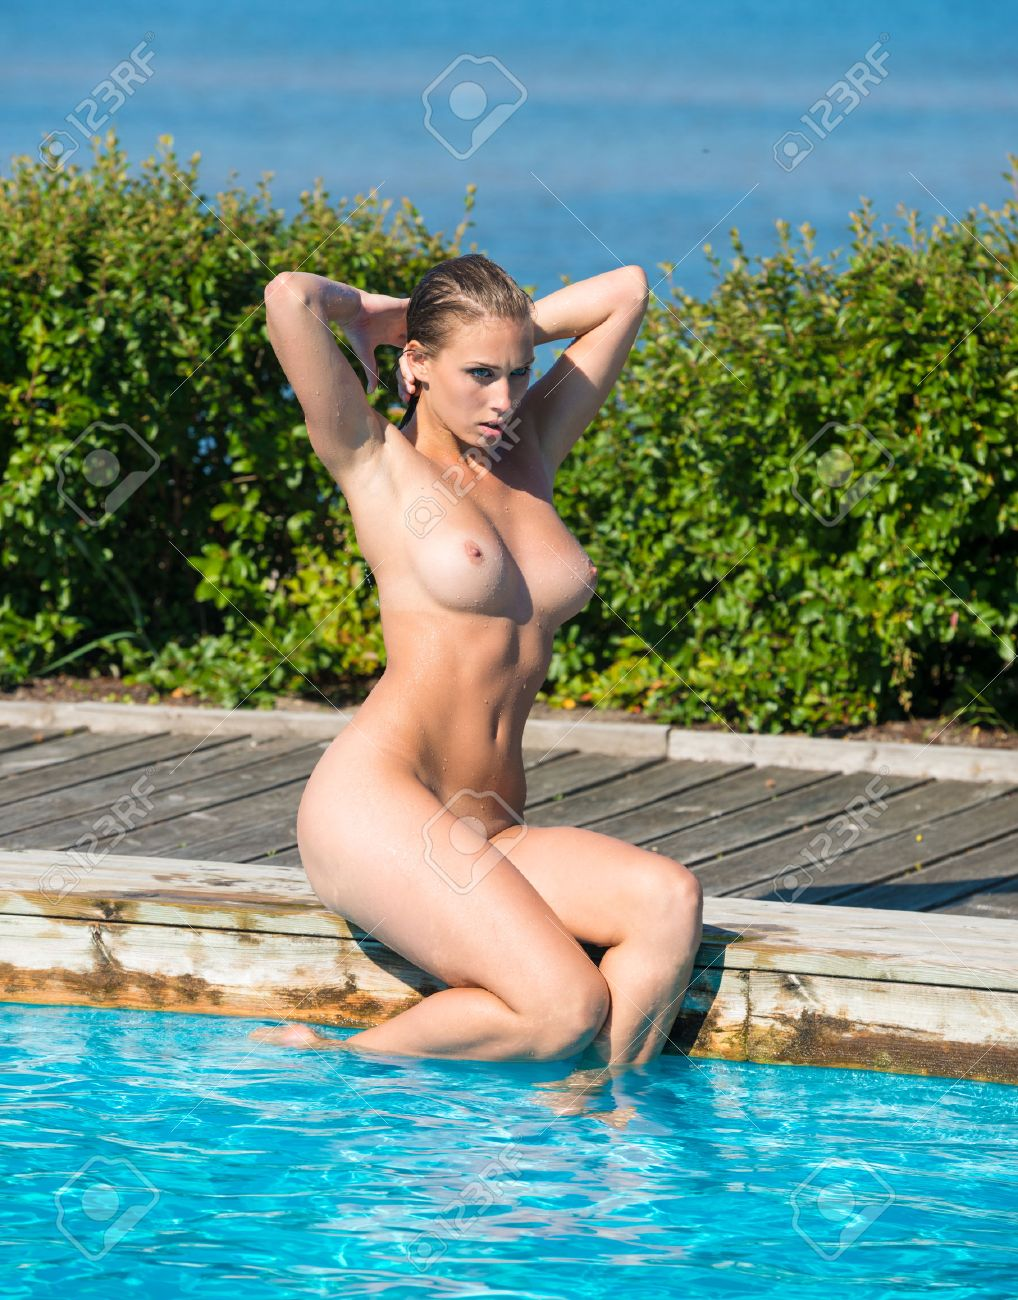 Sexy nude wet women at pool